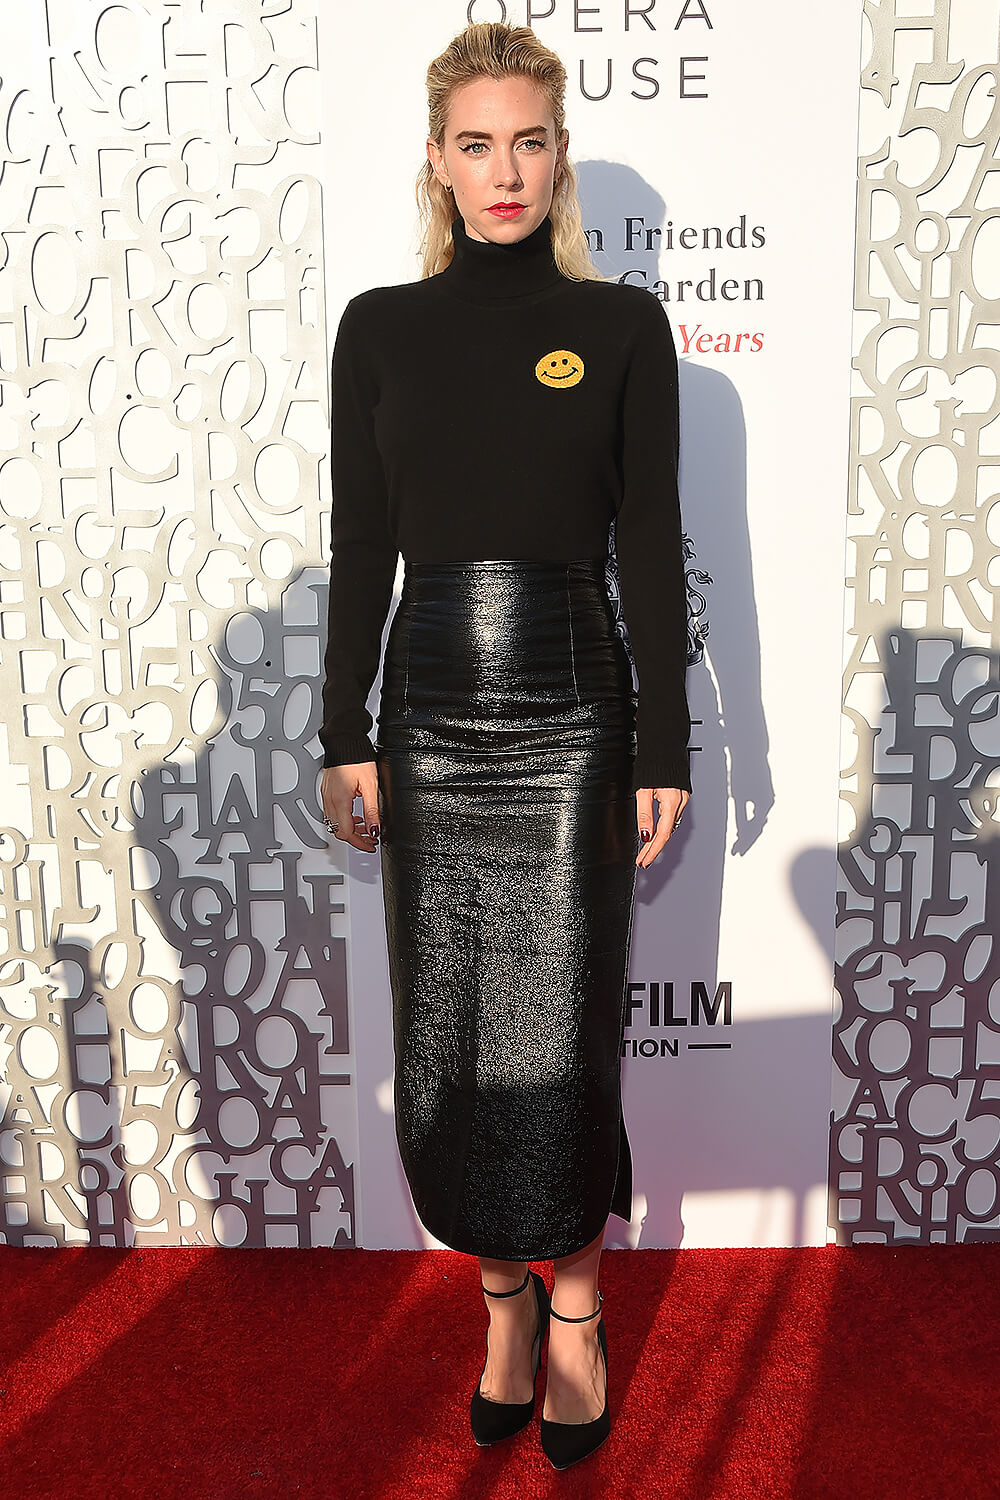 Vanessa Kirby attends American Friends of Covent Garden 50th Anniversary